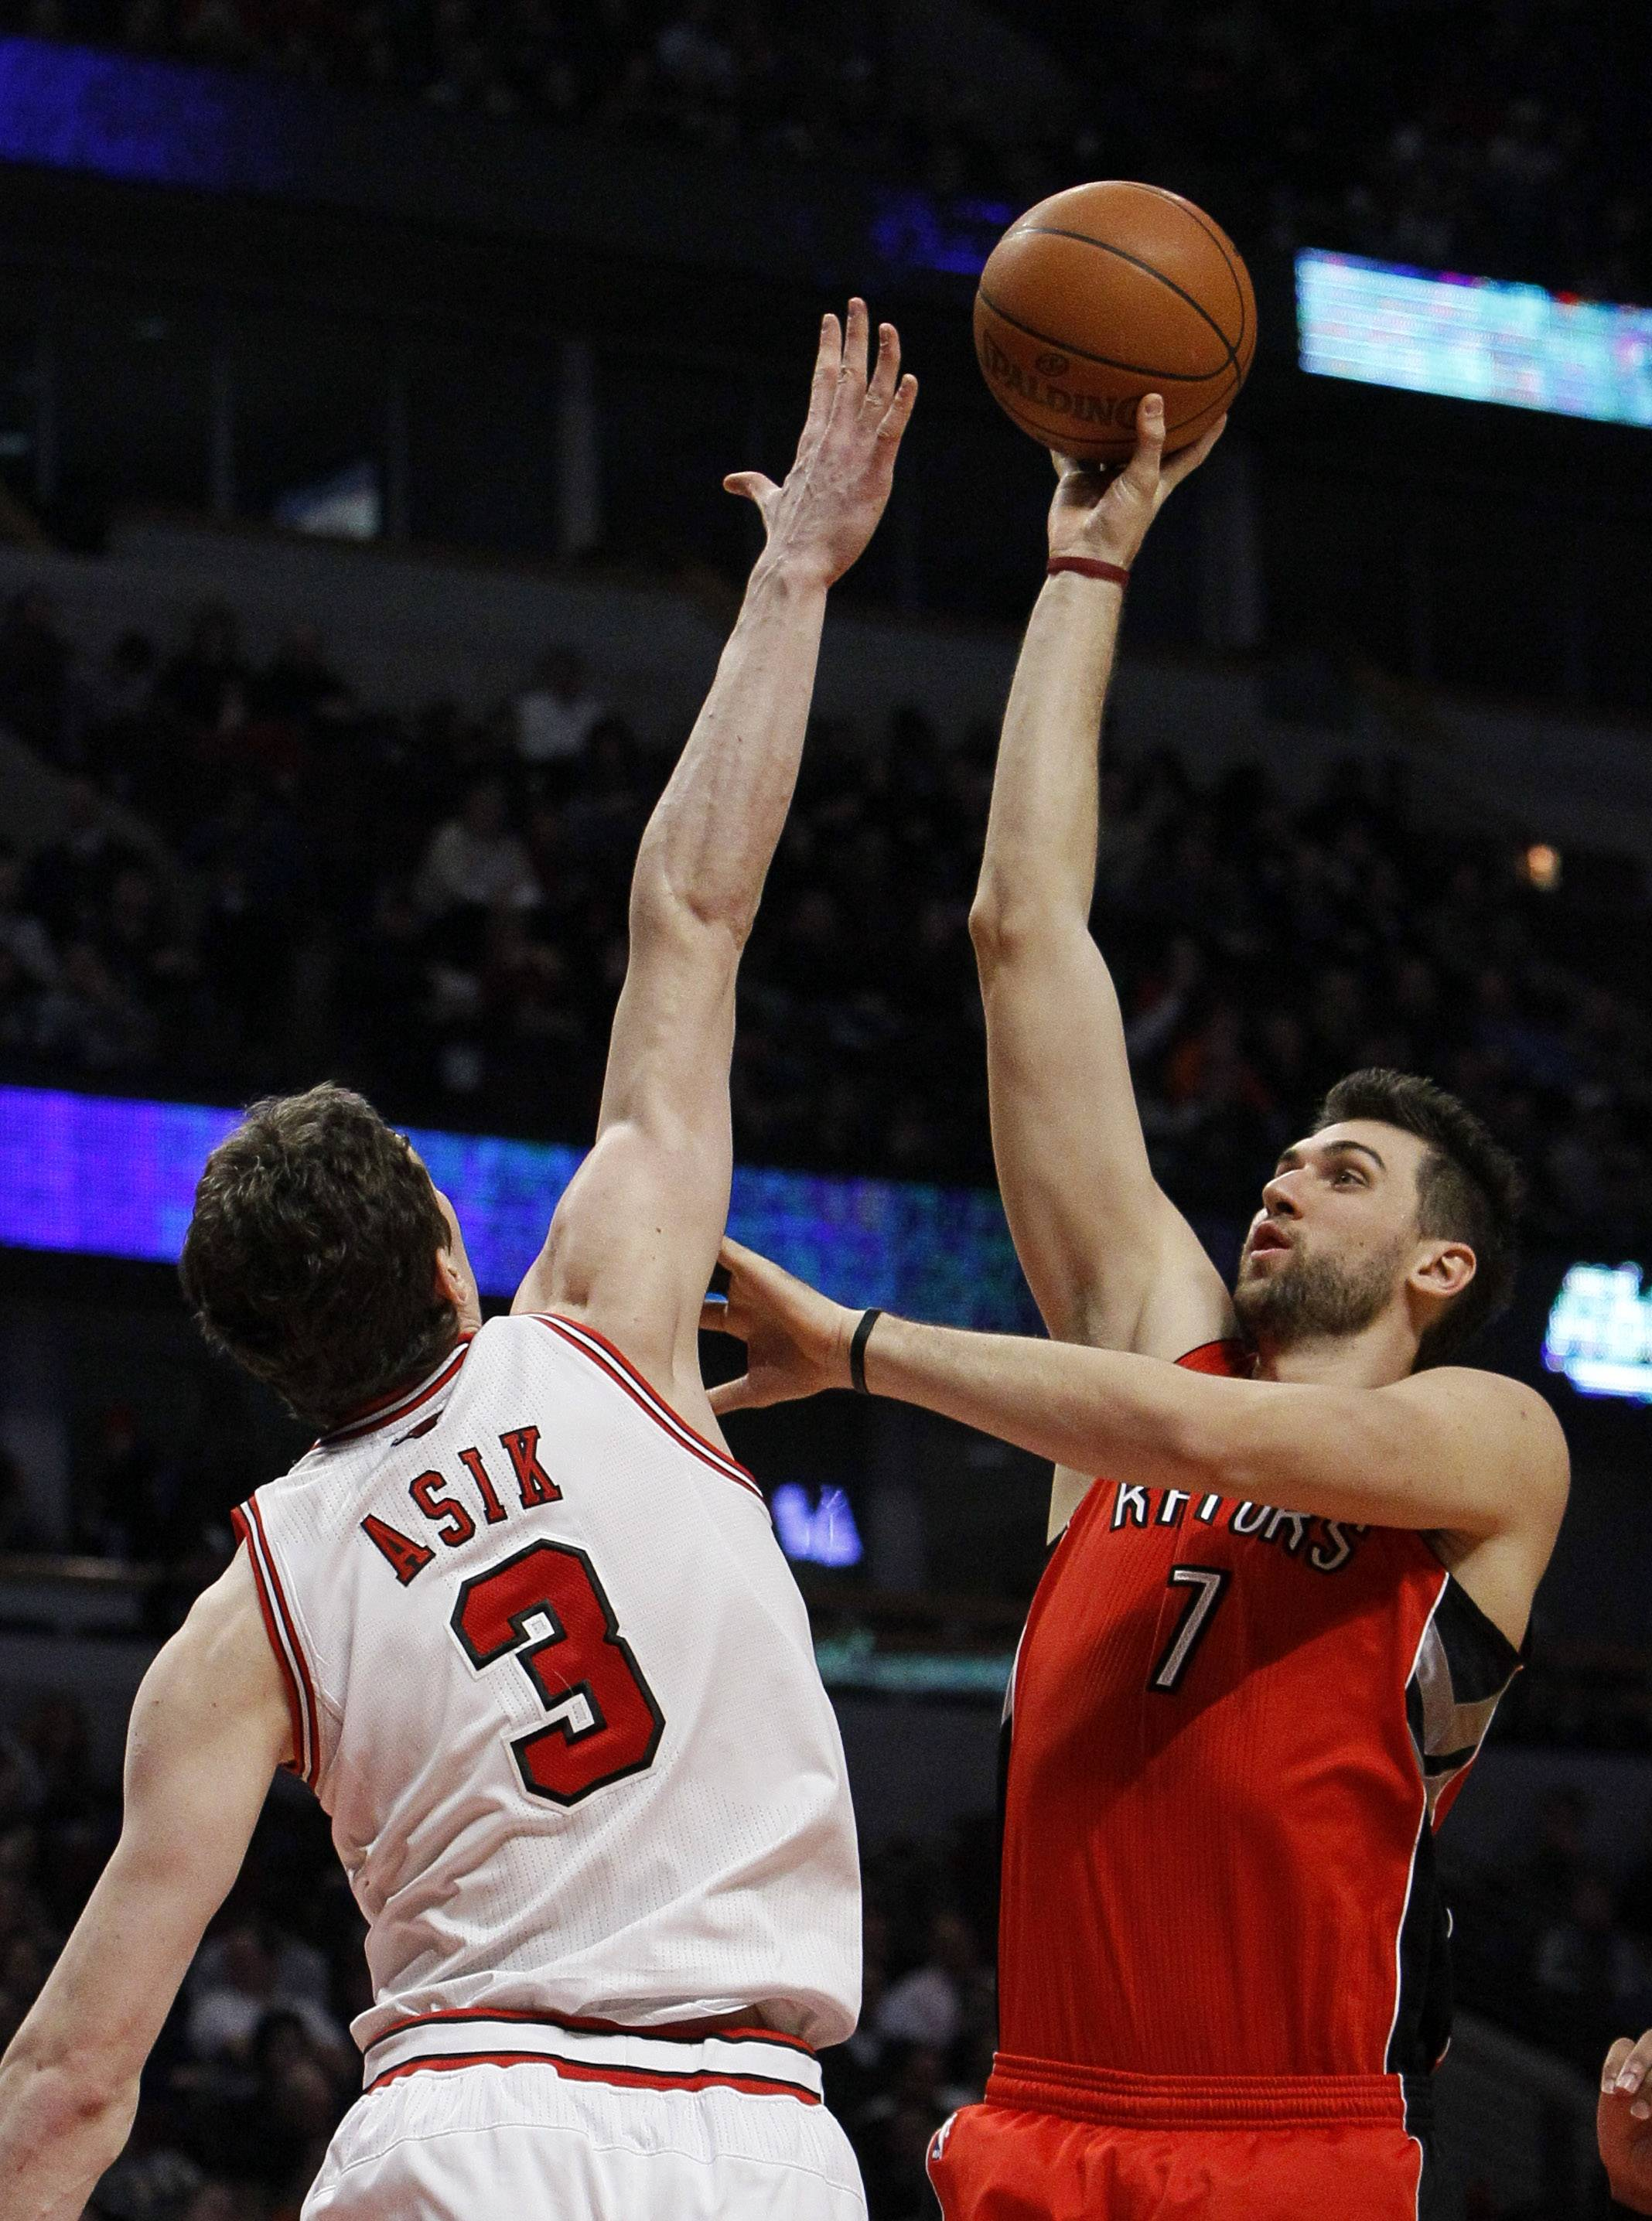 Toronto Raptors center Andrea Bargnani tries to shoot over Bulls center Omer Asik. Asik had a career-high 13 points and seven rebounds.